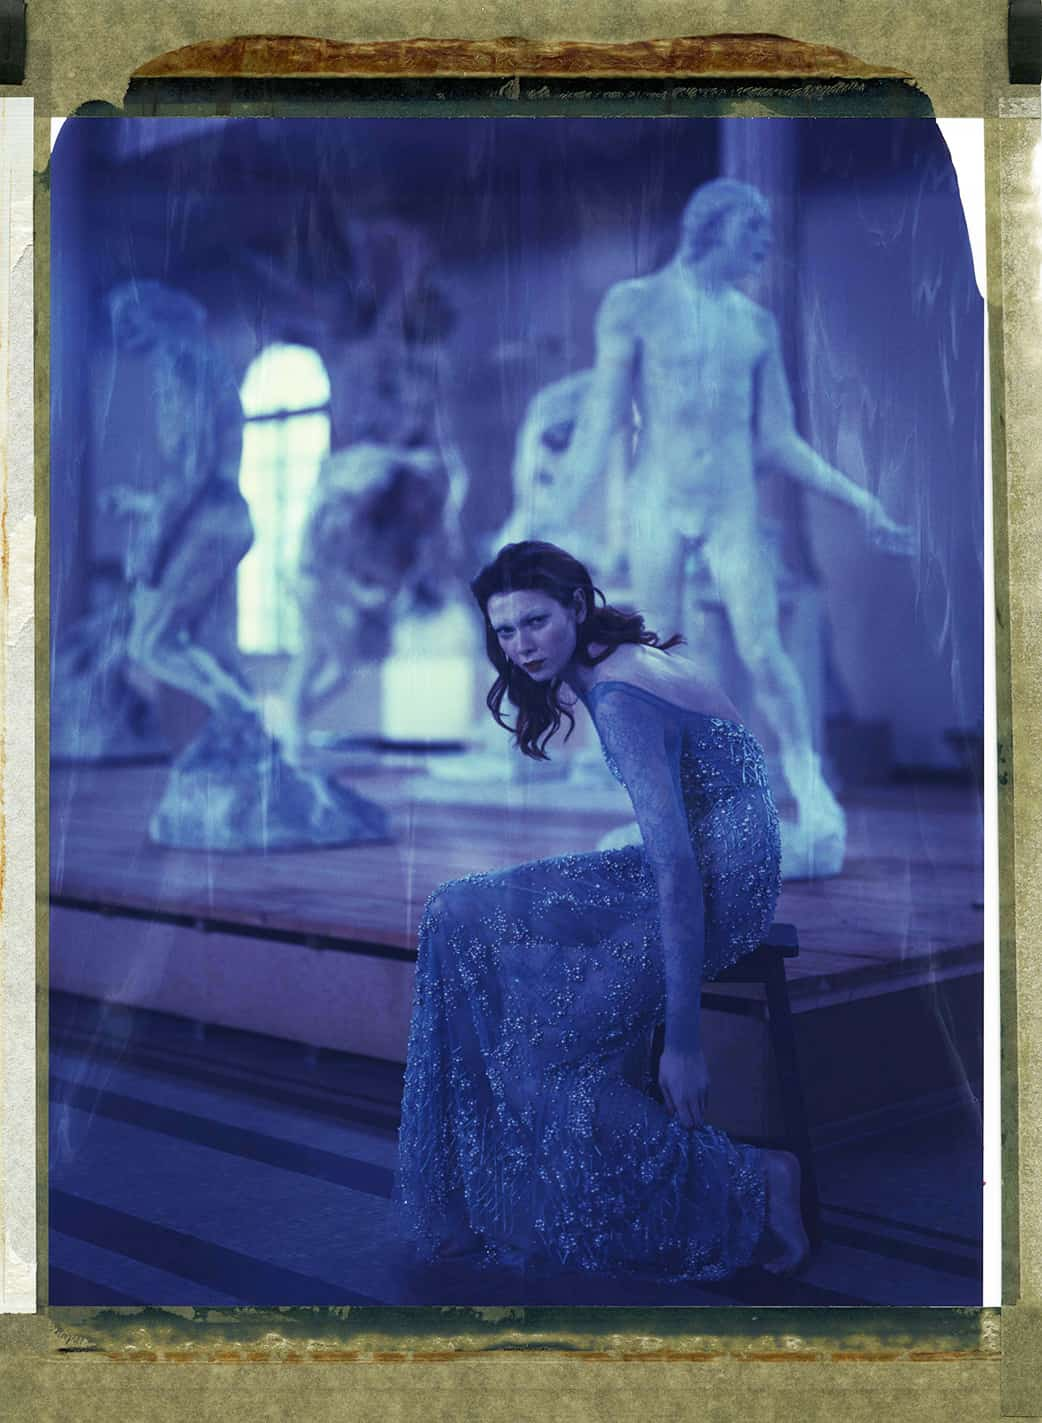 Fine art color photography of fashion model wearing Haute Couture by Elie Saab, photographed in front of sculptures by Auguste Rodin at the Musée Rodin Meudon, France.